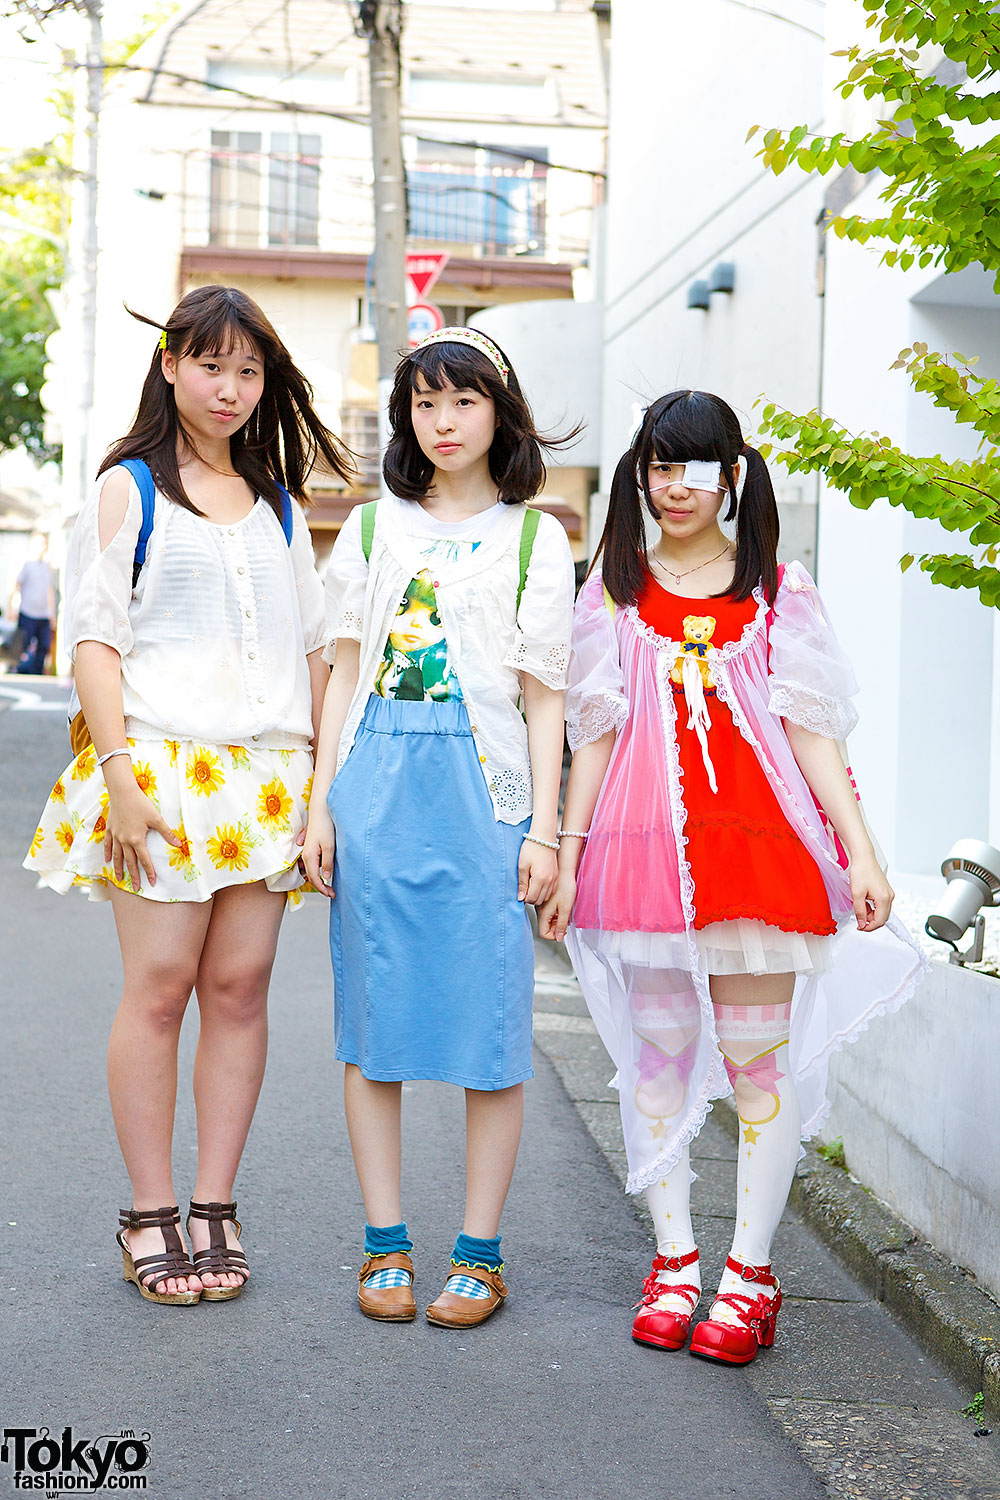 Harajuku Idol Girls in Colorful Outfits